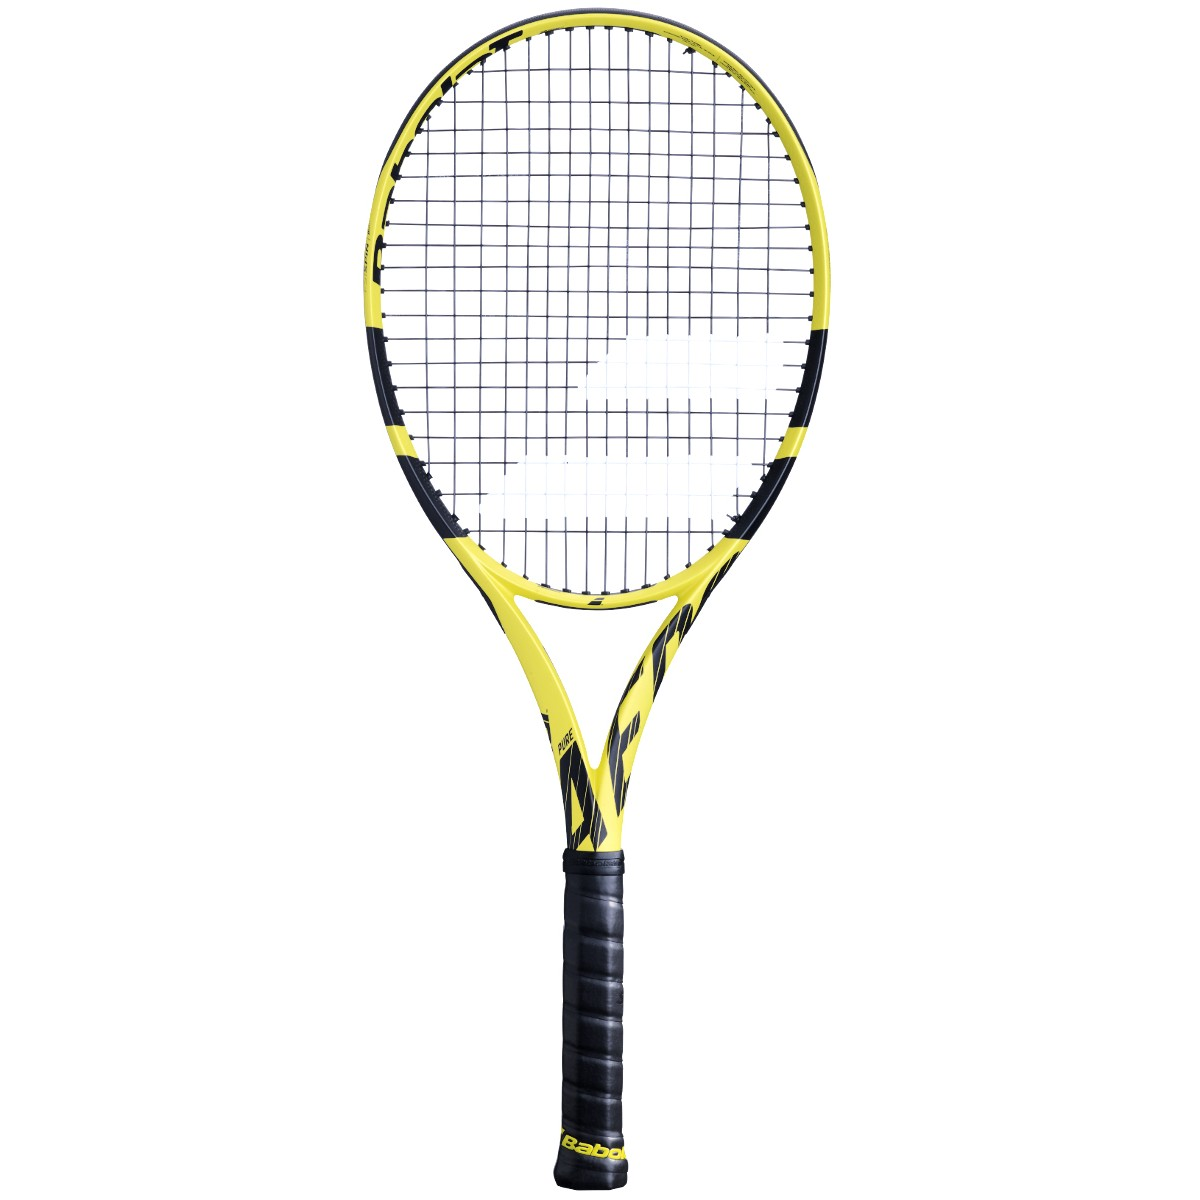 BABOLAT PURE AERO (300 GR) (NEW) RACQUET - BABOLAT - Adult Racquets -  Racquets | Tennispro